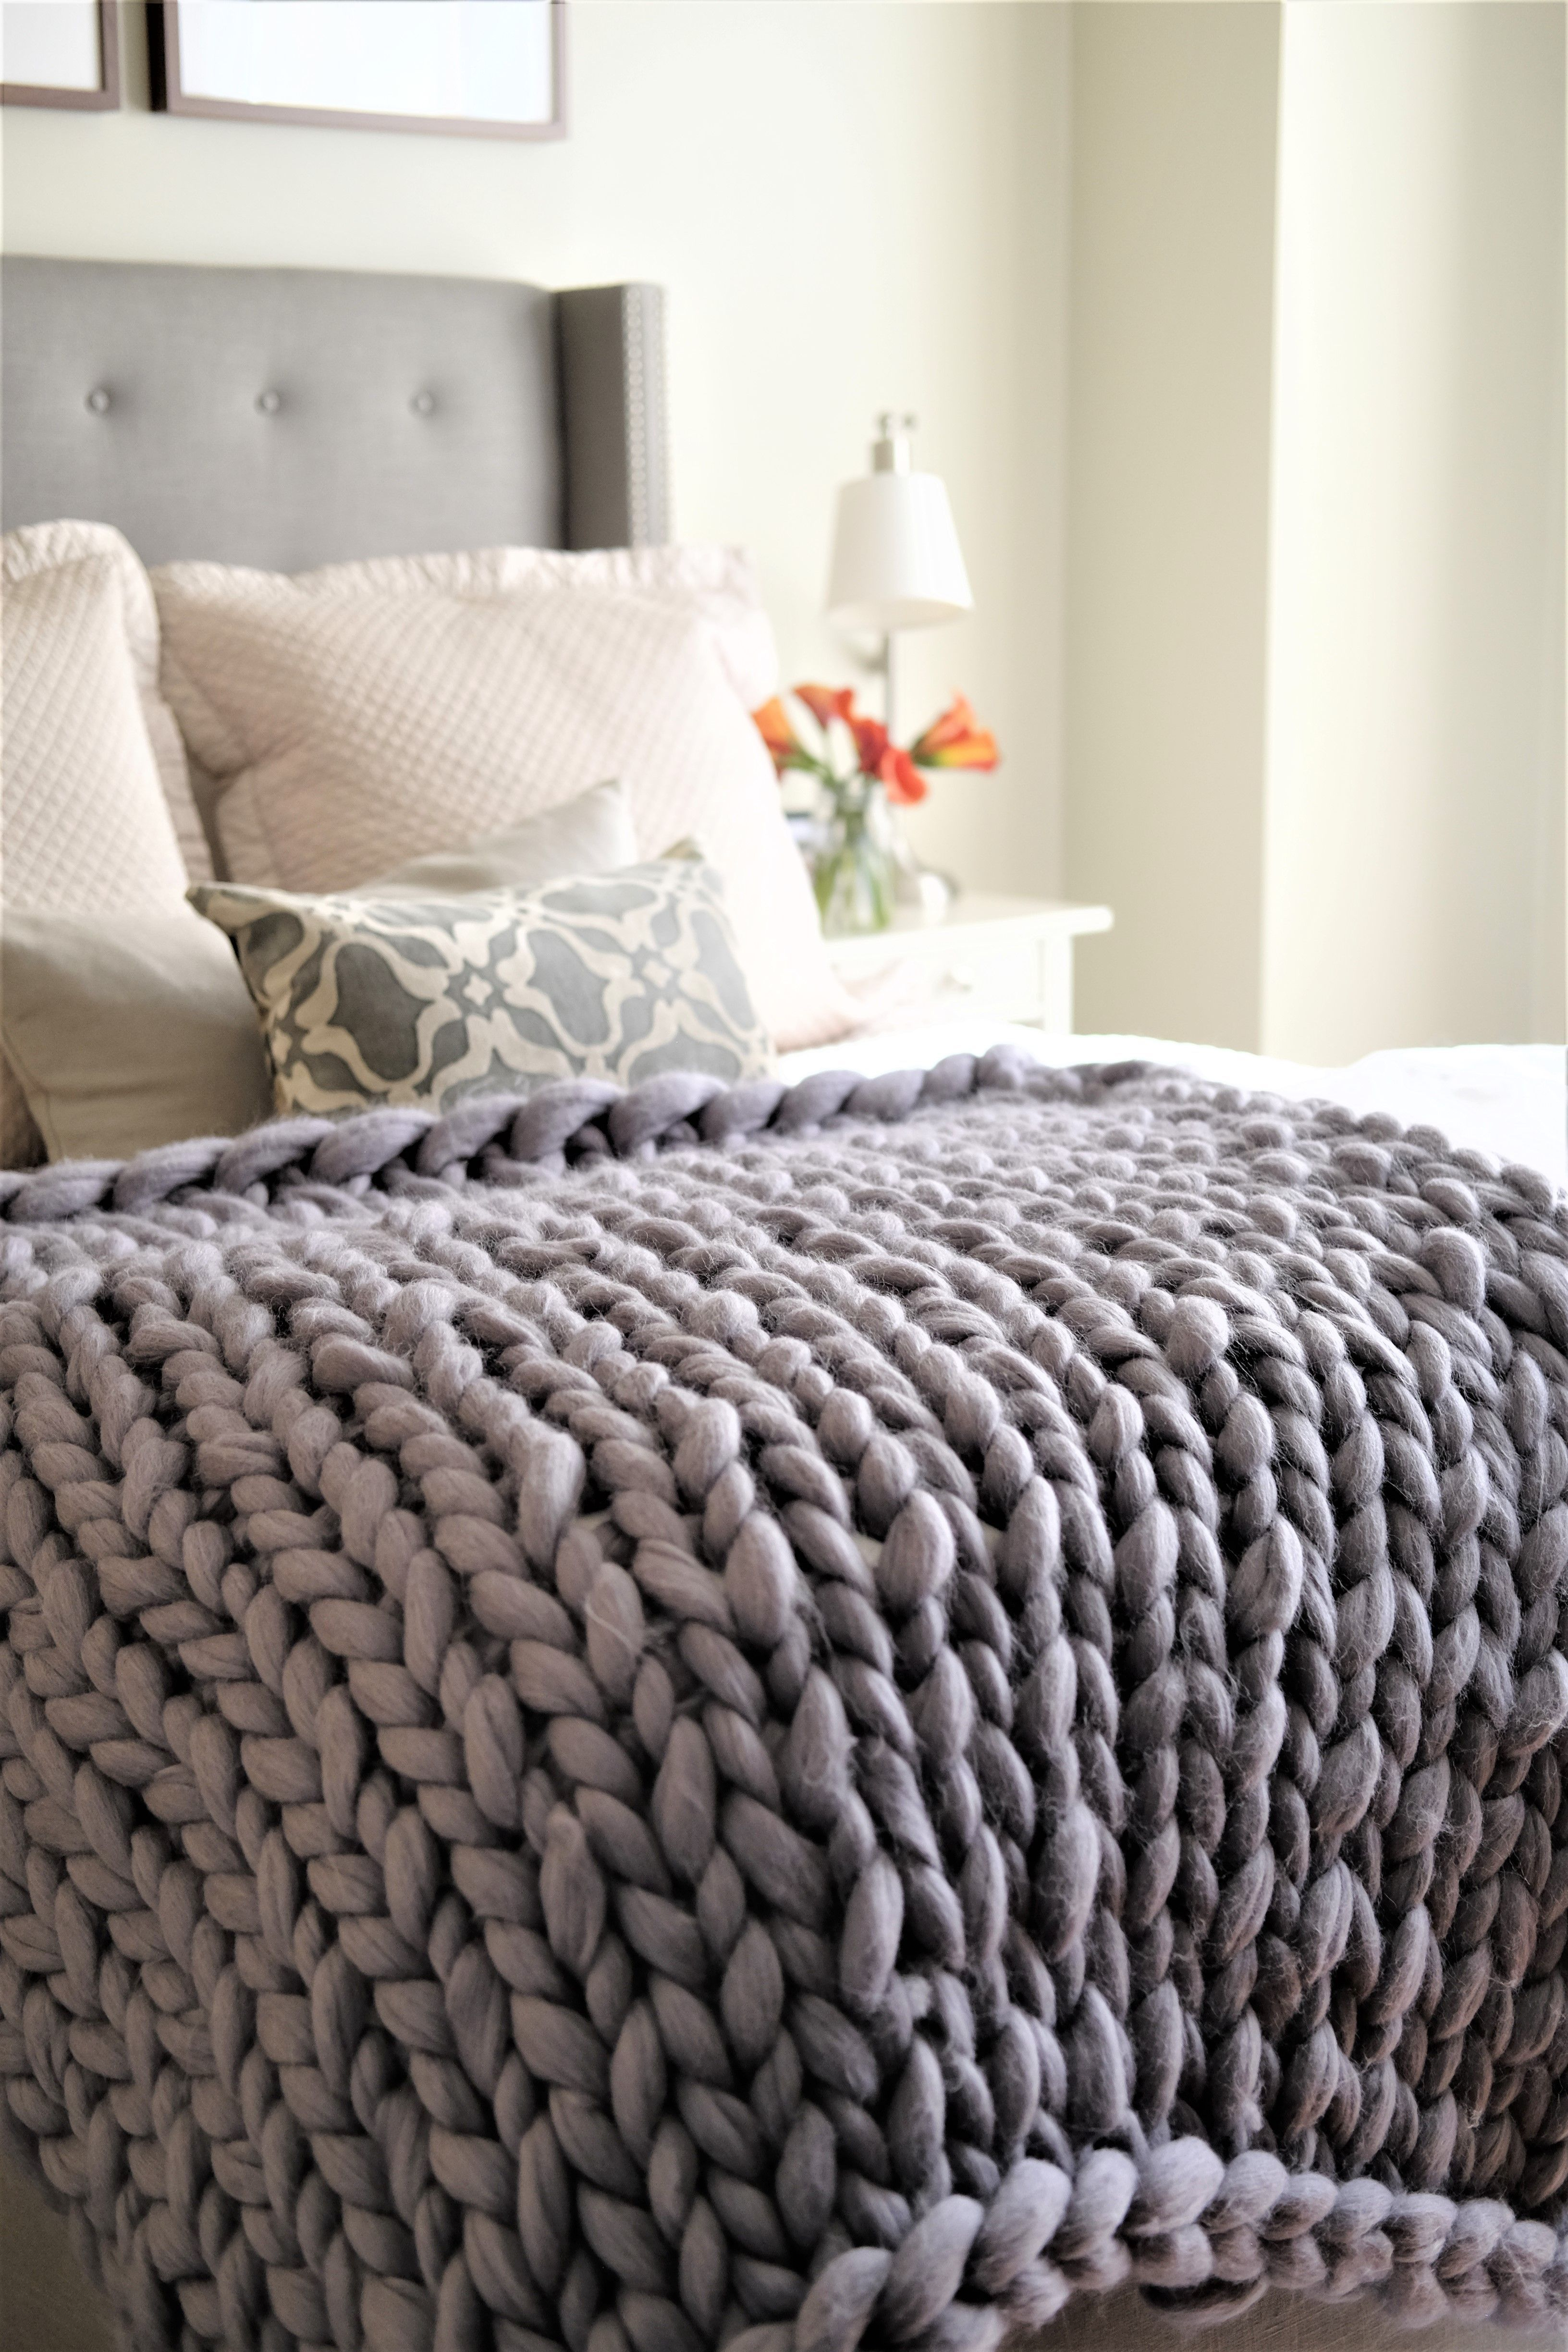 Felted Merino Wool Blanket No Shedding Perfect For Every Day Use Arm Knitting Blanket Knitted Blankets Chunky Knit Blanket